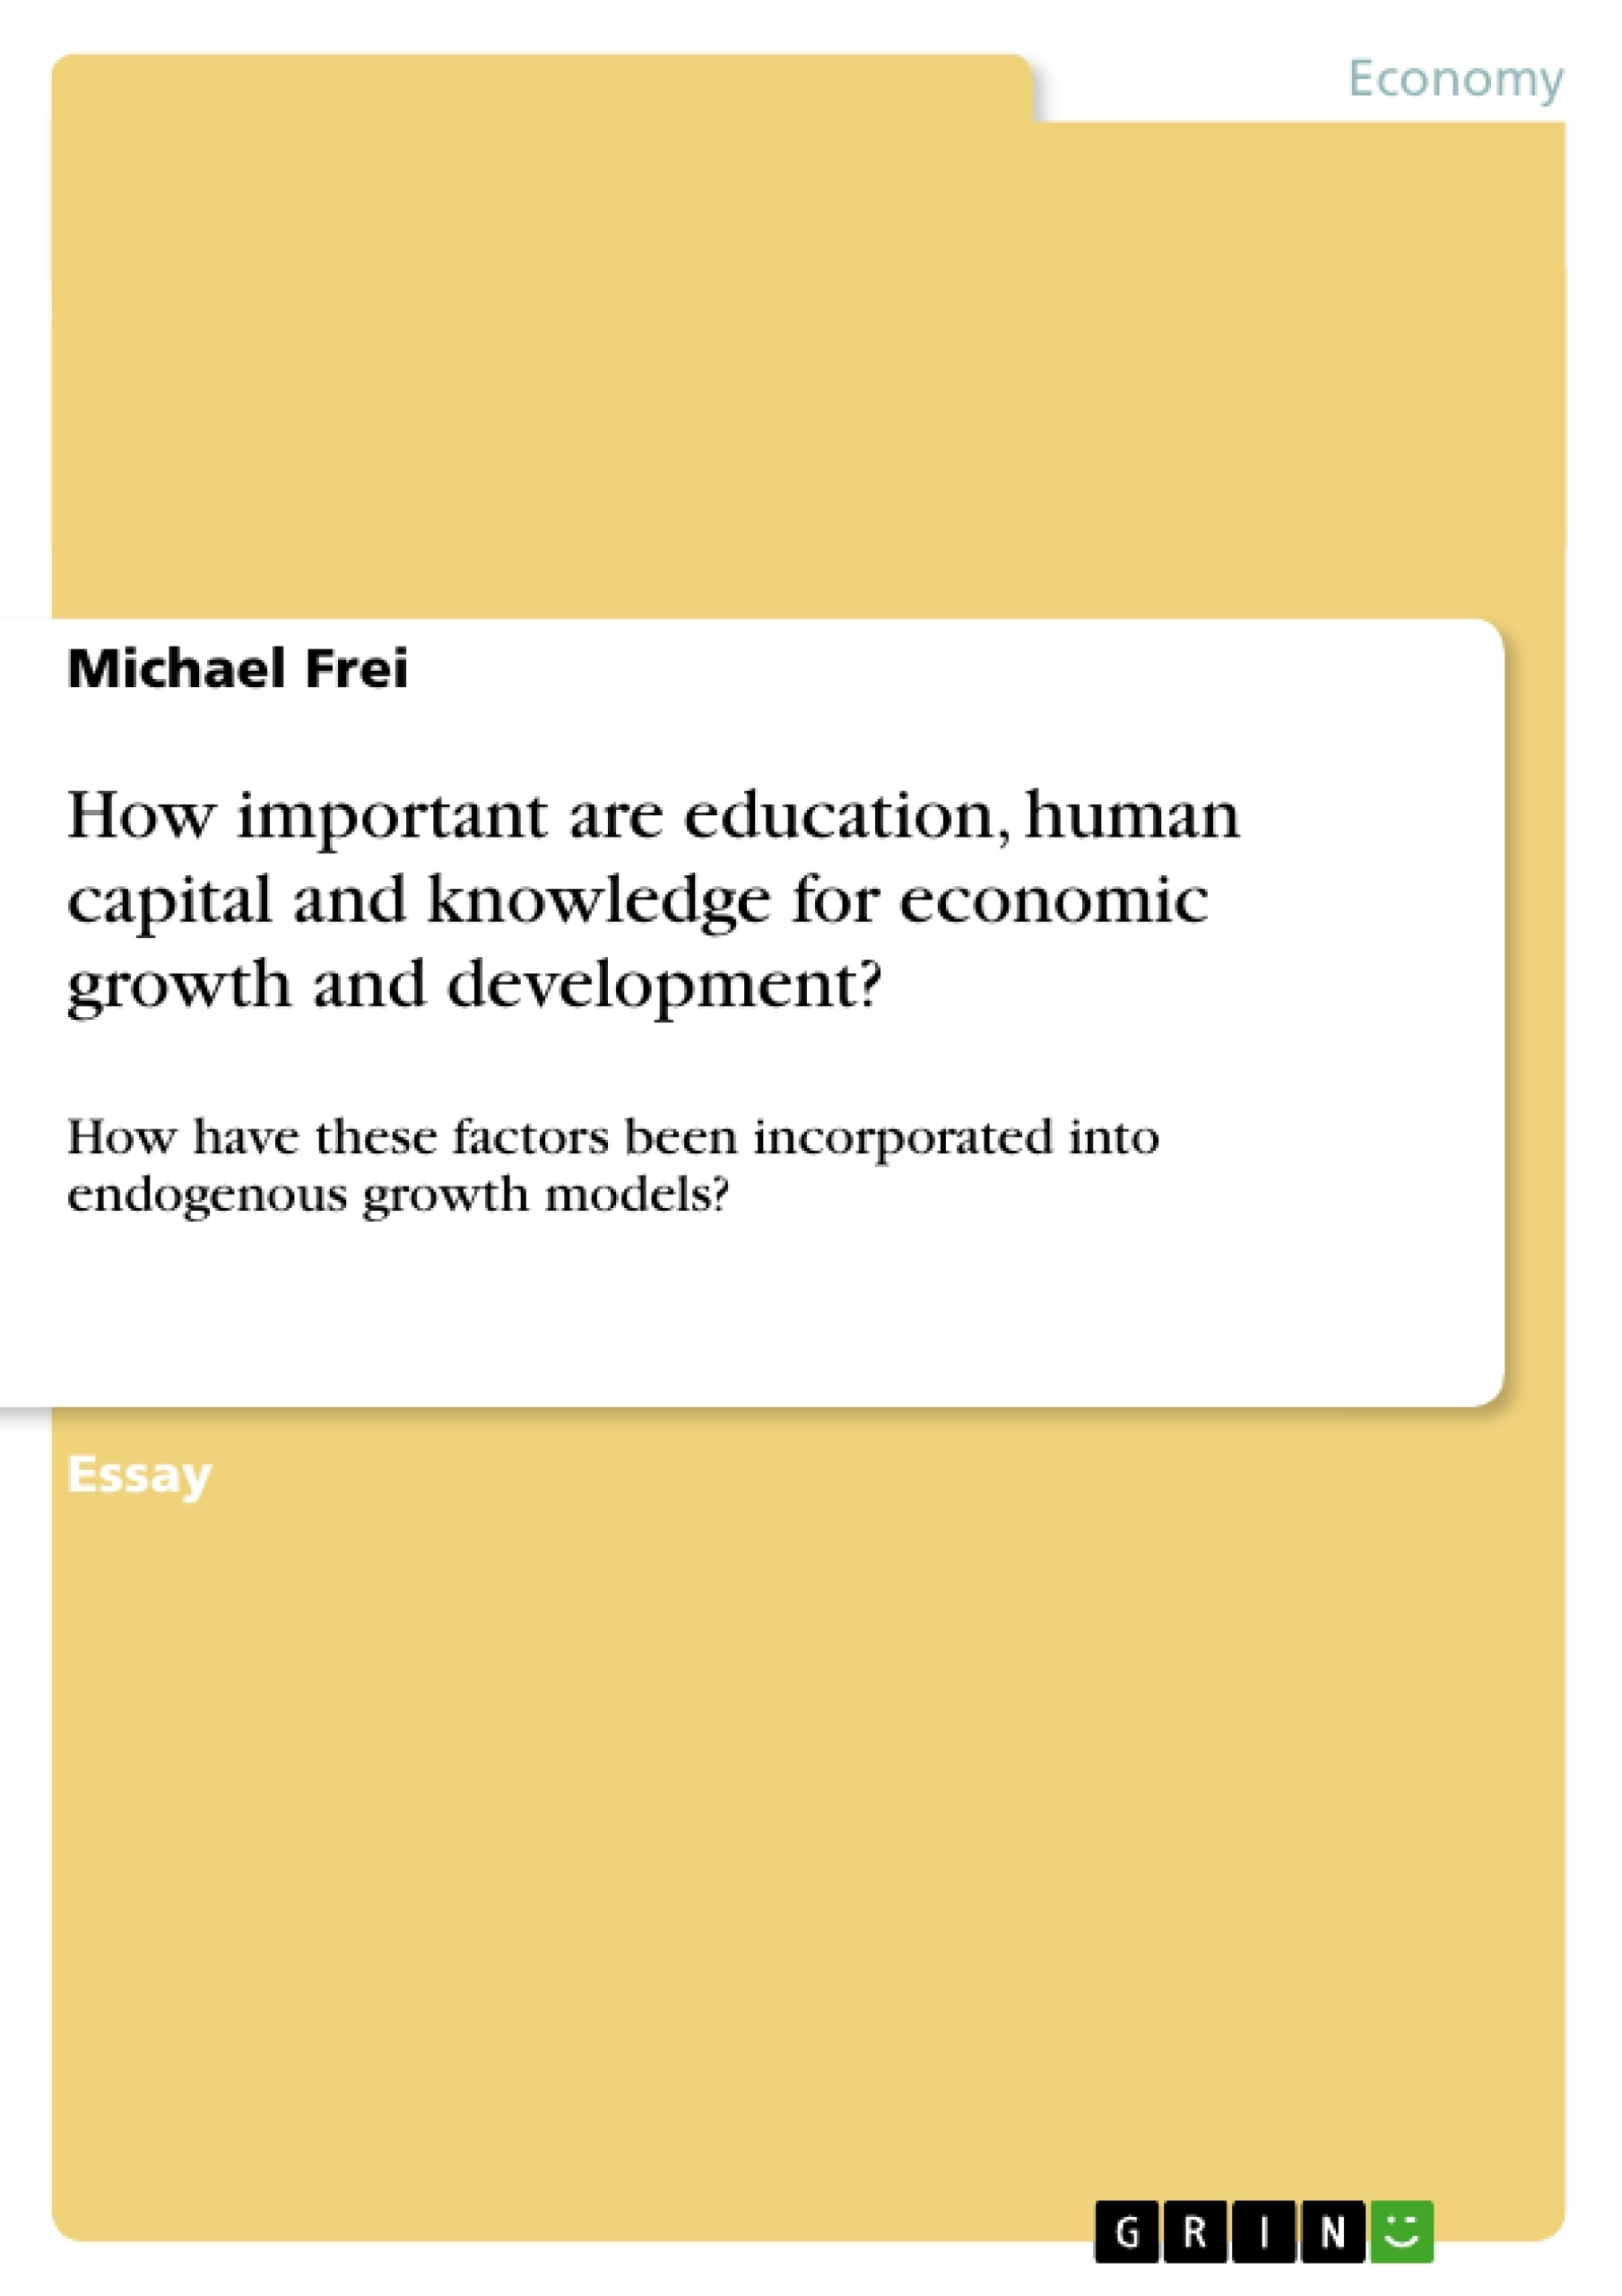 the importance of human capital for economic growth